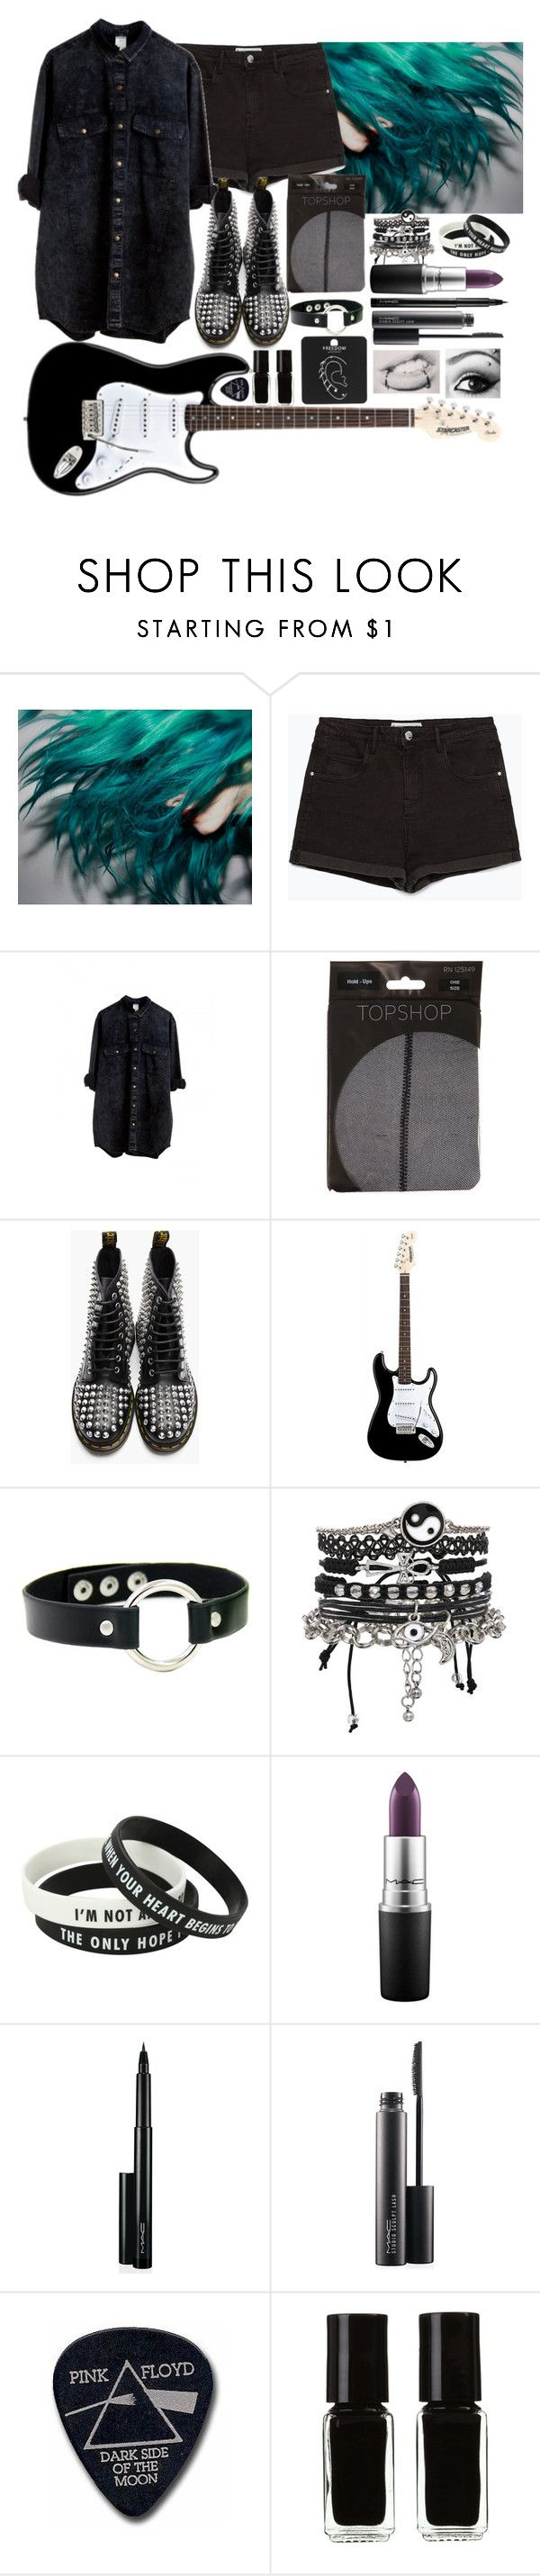 """[Concert in Colombia w/ the girls]"" by purplemonkeys005 on Polyvore featuring Zara, Monki, Dr. Martens, ASOS, MAC Cosmetics, Floyd, The New Black, Topshop and mandy"